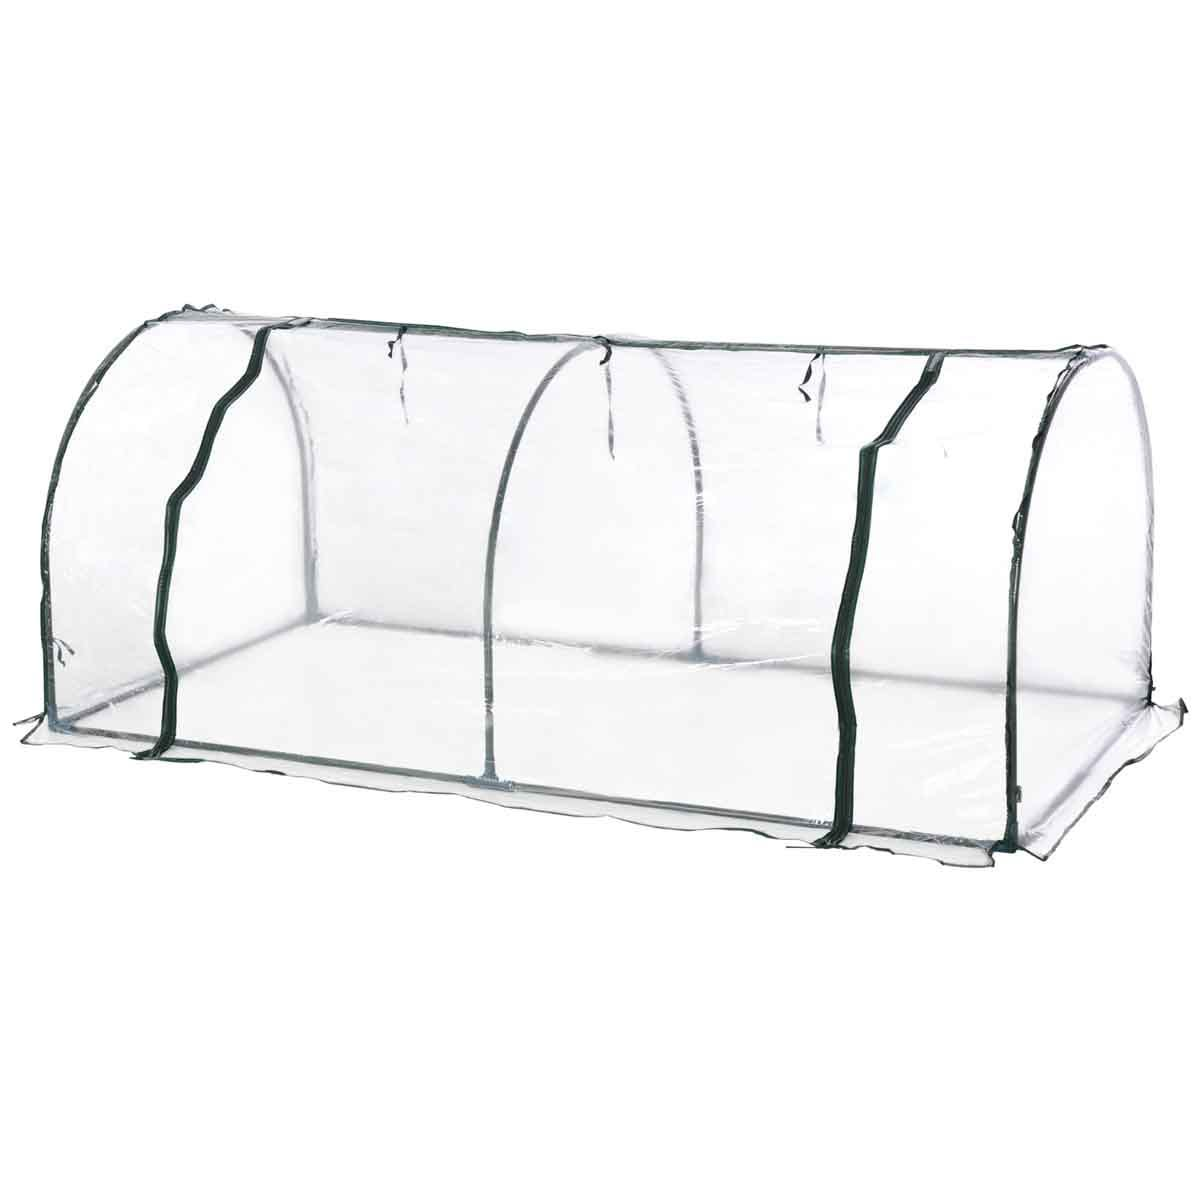 Outsunny PVC 1 x 2m Tunnel Greenhouse with Steel Frame